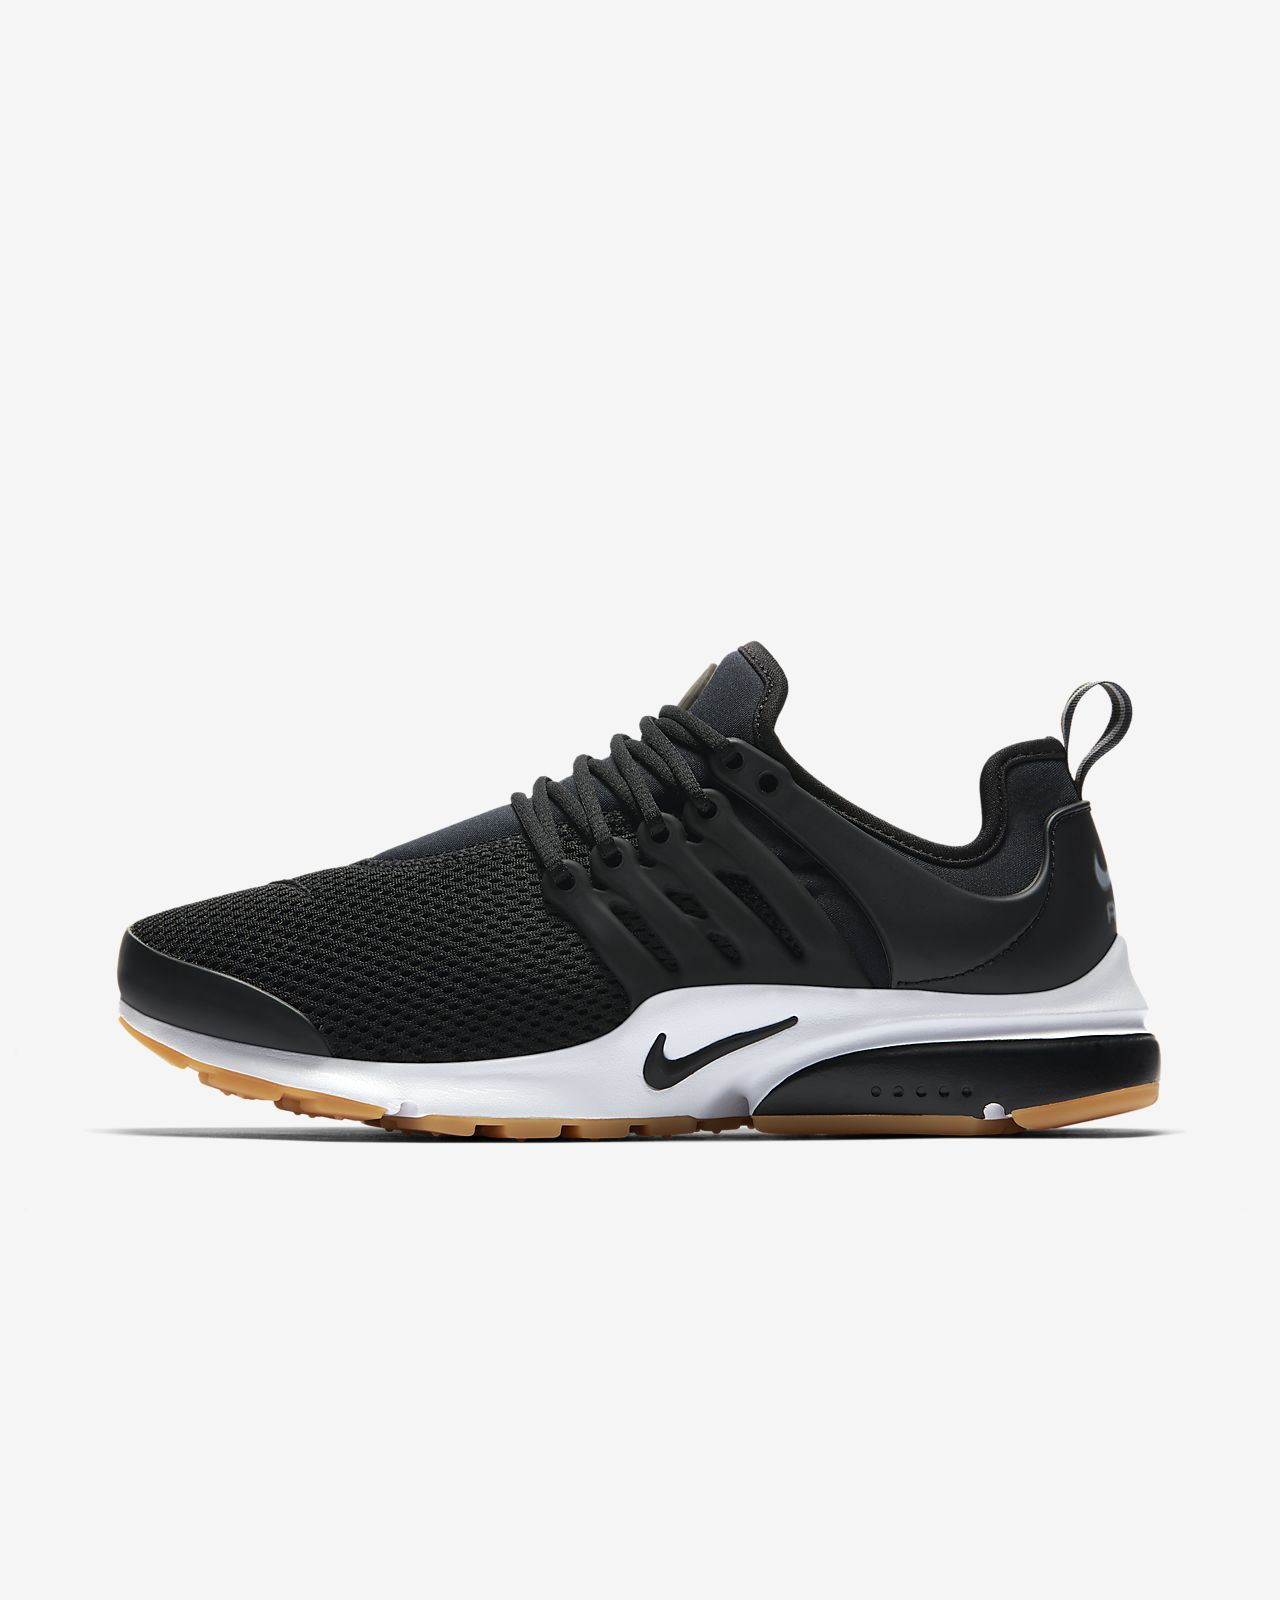 premium selection b3f8c 15528 Nike Air Presto Women's Shoe